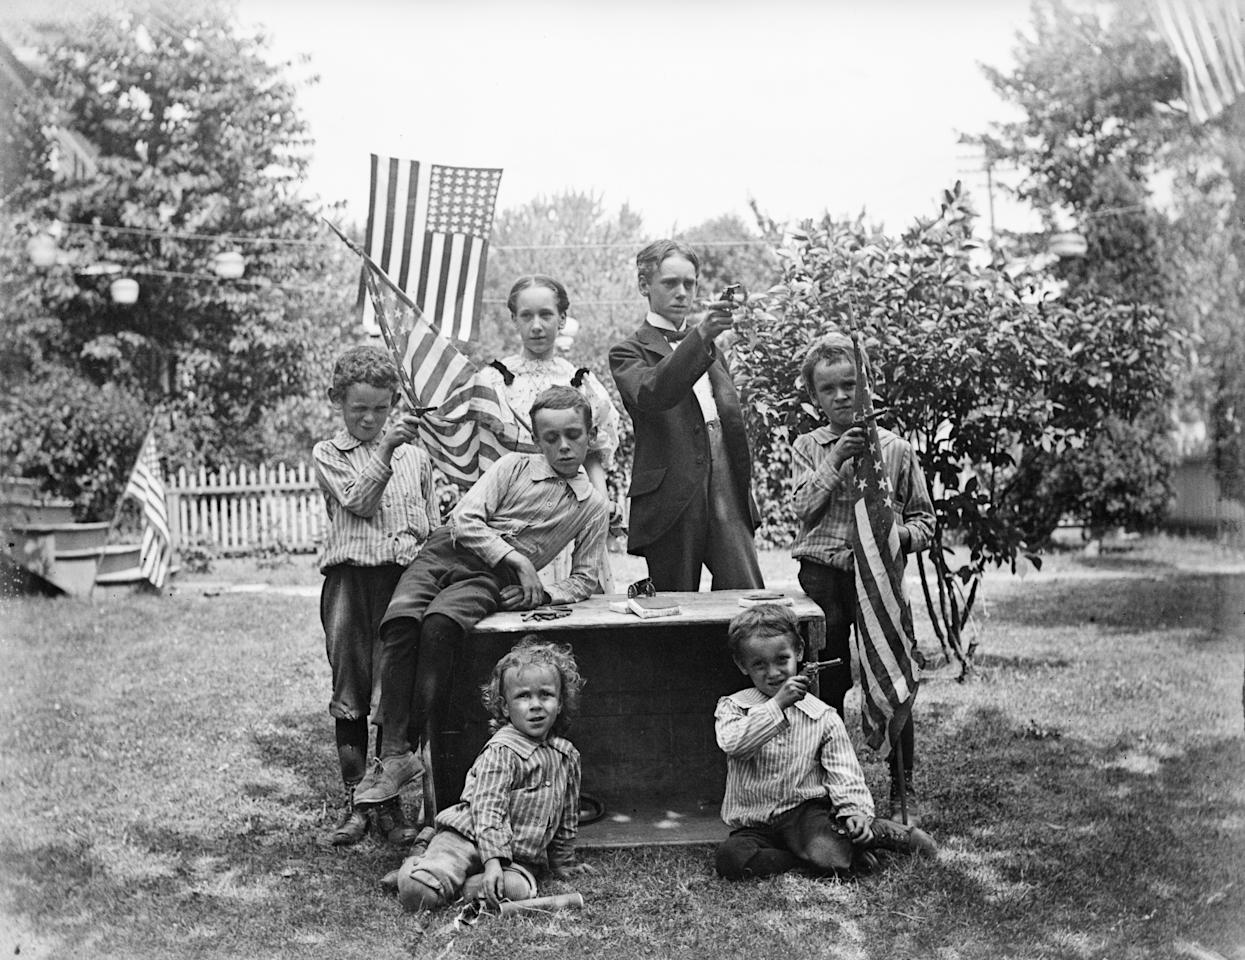 Family with pistols and flags get ready for their Fourth of July celebration circa 1880s